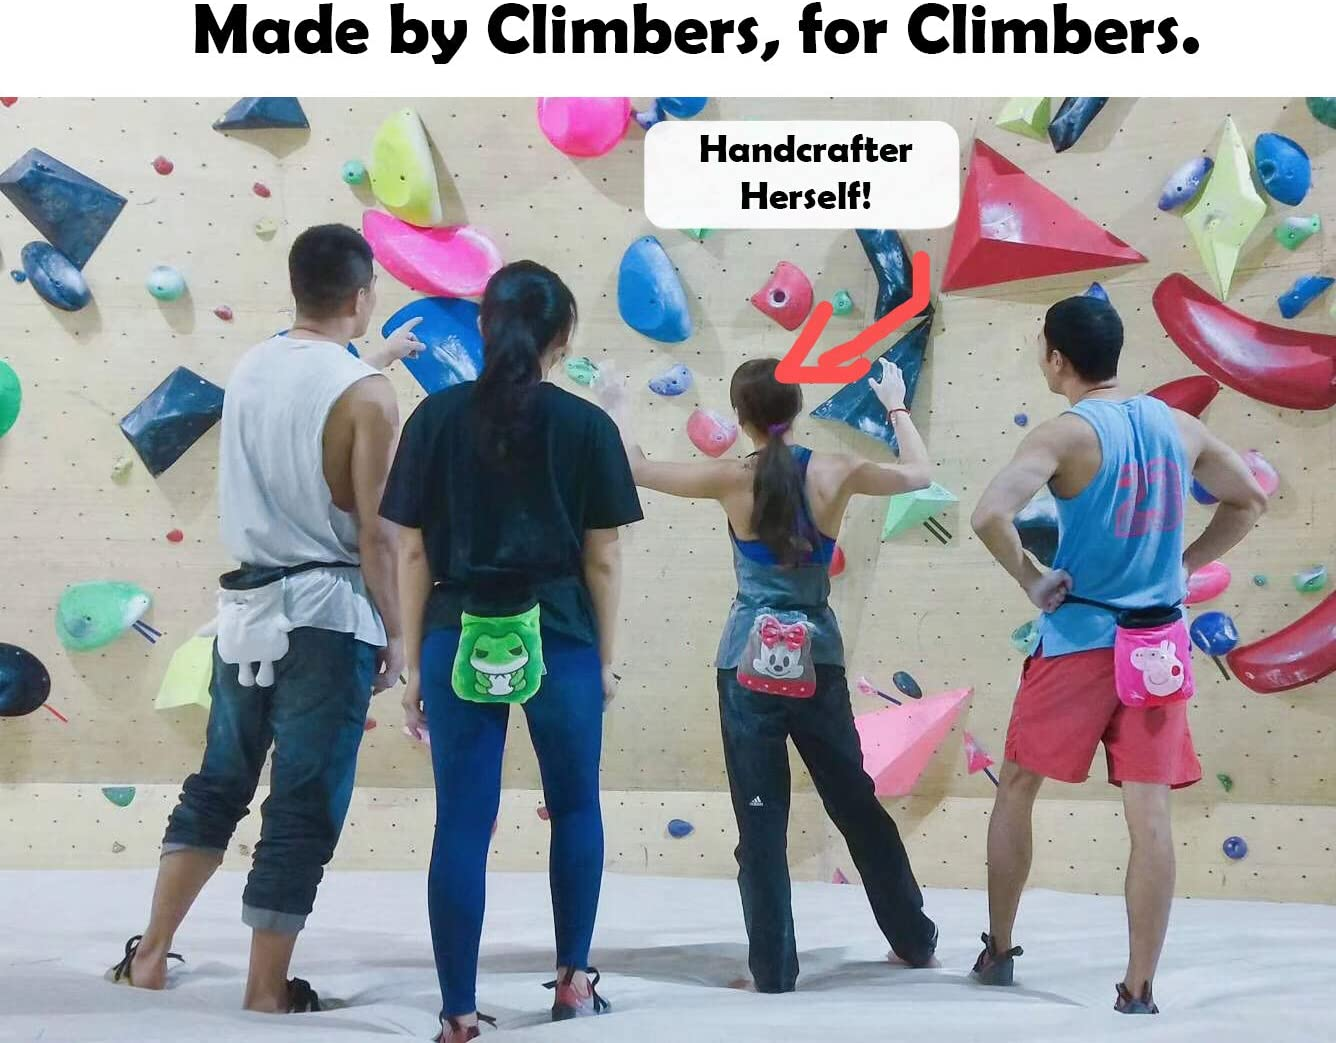 RockPlushies Handcrafted Chalk Bag Drawstring Closure and Adjustable Quick-Clip Belt Rock Climber Gift for Kids /& Adults